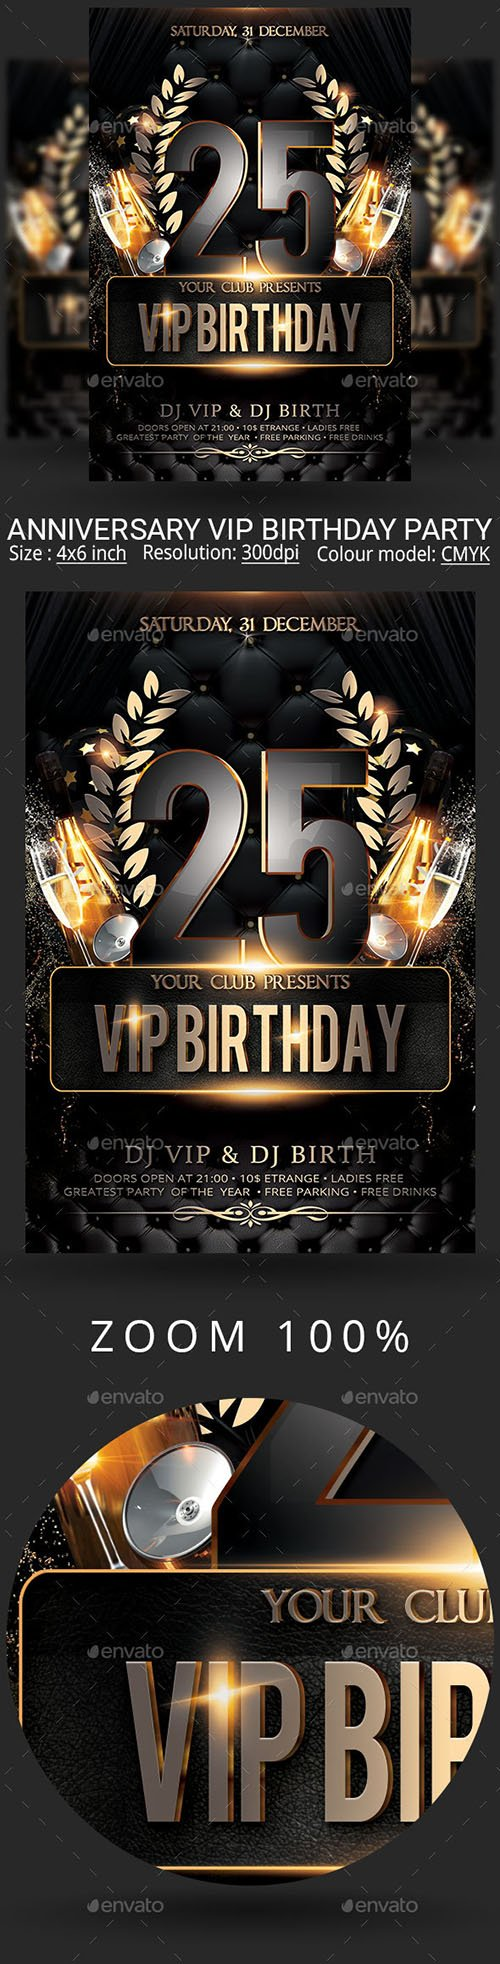 GraphicRiver - Vip Birthday Anniversary Party Flyer 22489680